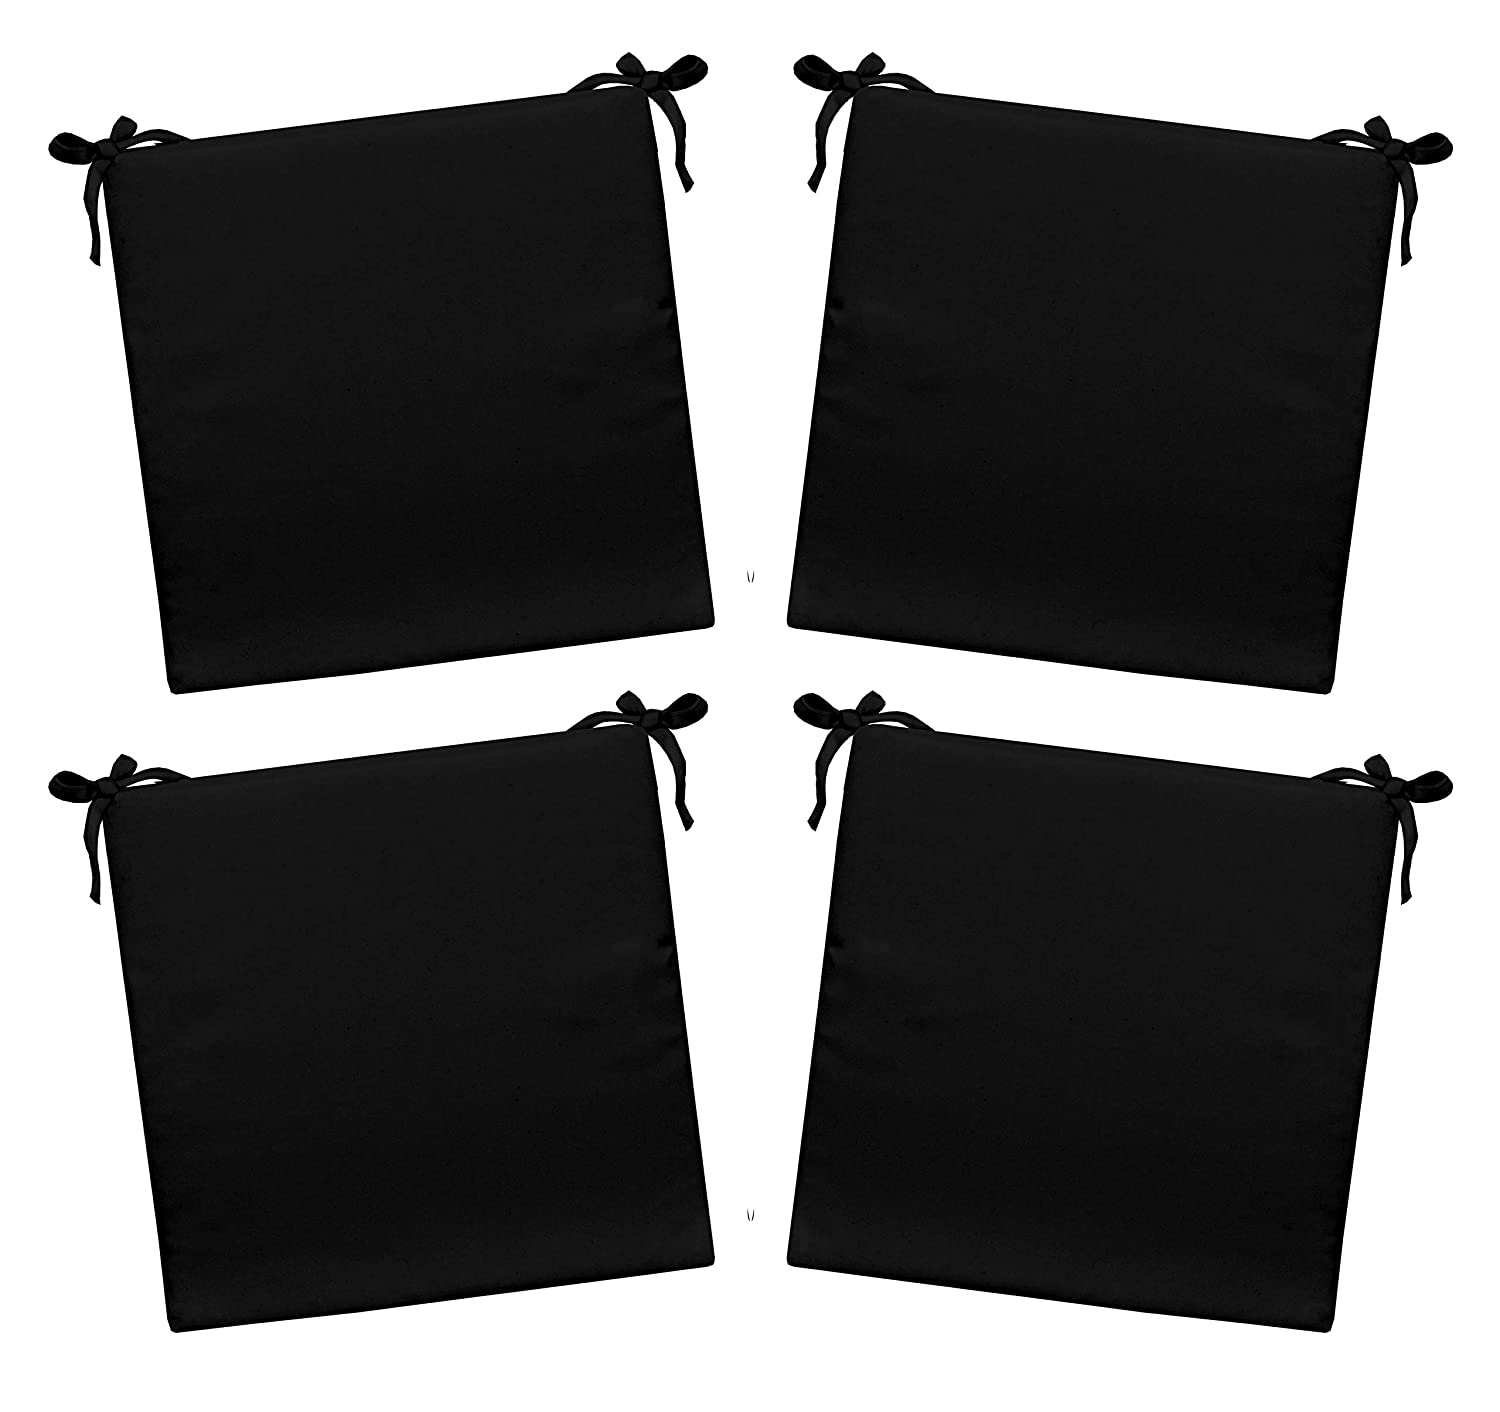 Resort Spa Home Decor Set of 4 – Indoor Outdoor Solid Black Square Universal 3 Thick Foam Seat Cushions with Ties for Dining Patio Chairs – Choose Size 17 x 17